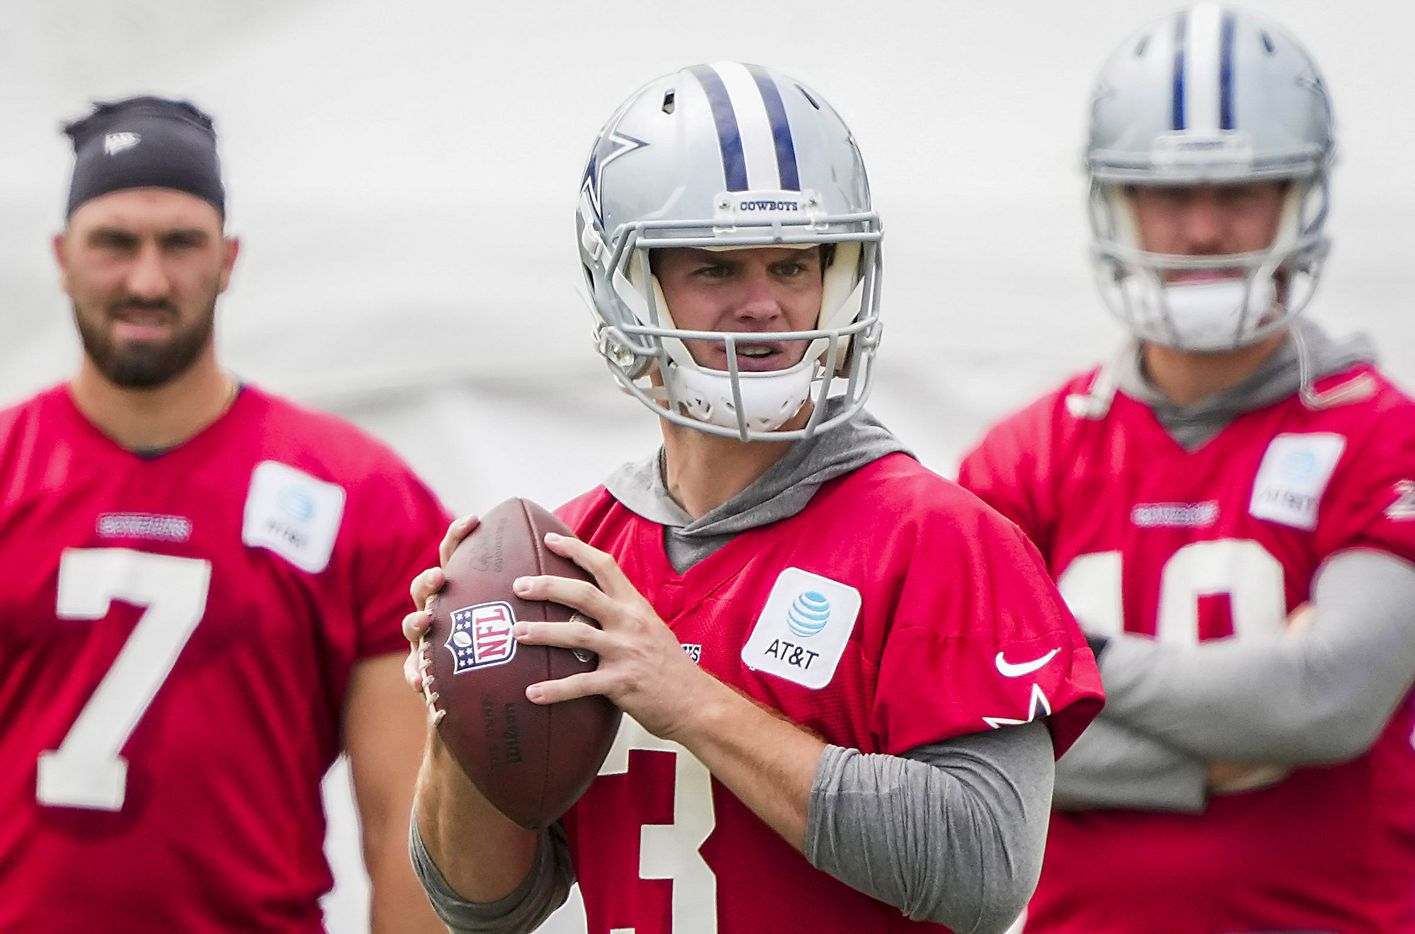 Dallas Cowboys quarterback Garrett Gilbert (3) throws a pass as fellow quarterbacks Ben DiNucci (7) and Cooper Rush (10) look on during a practice at training camp on Saturday, July 24, 2021, in Oxnard, Calif.